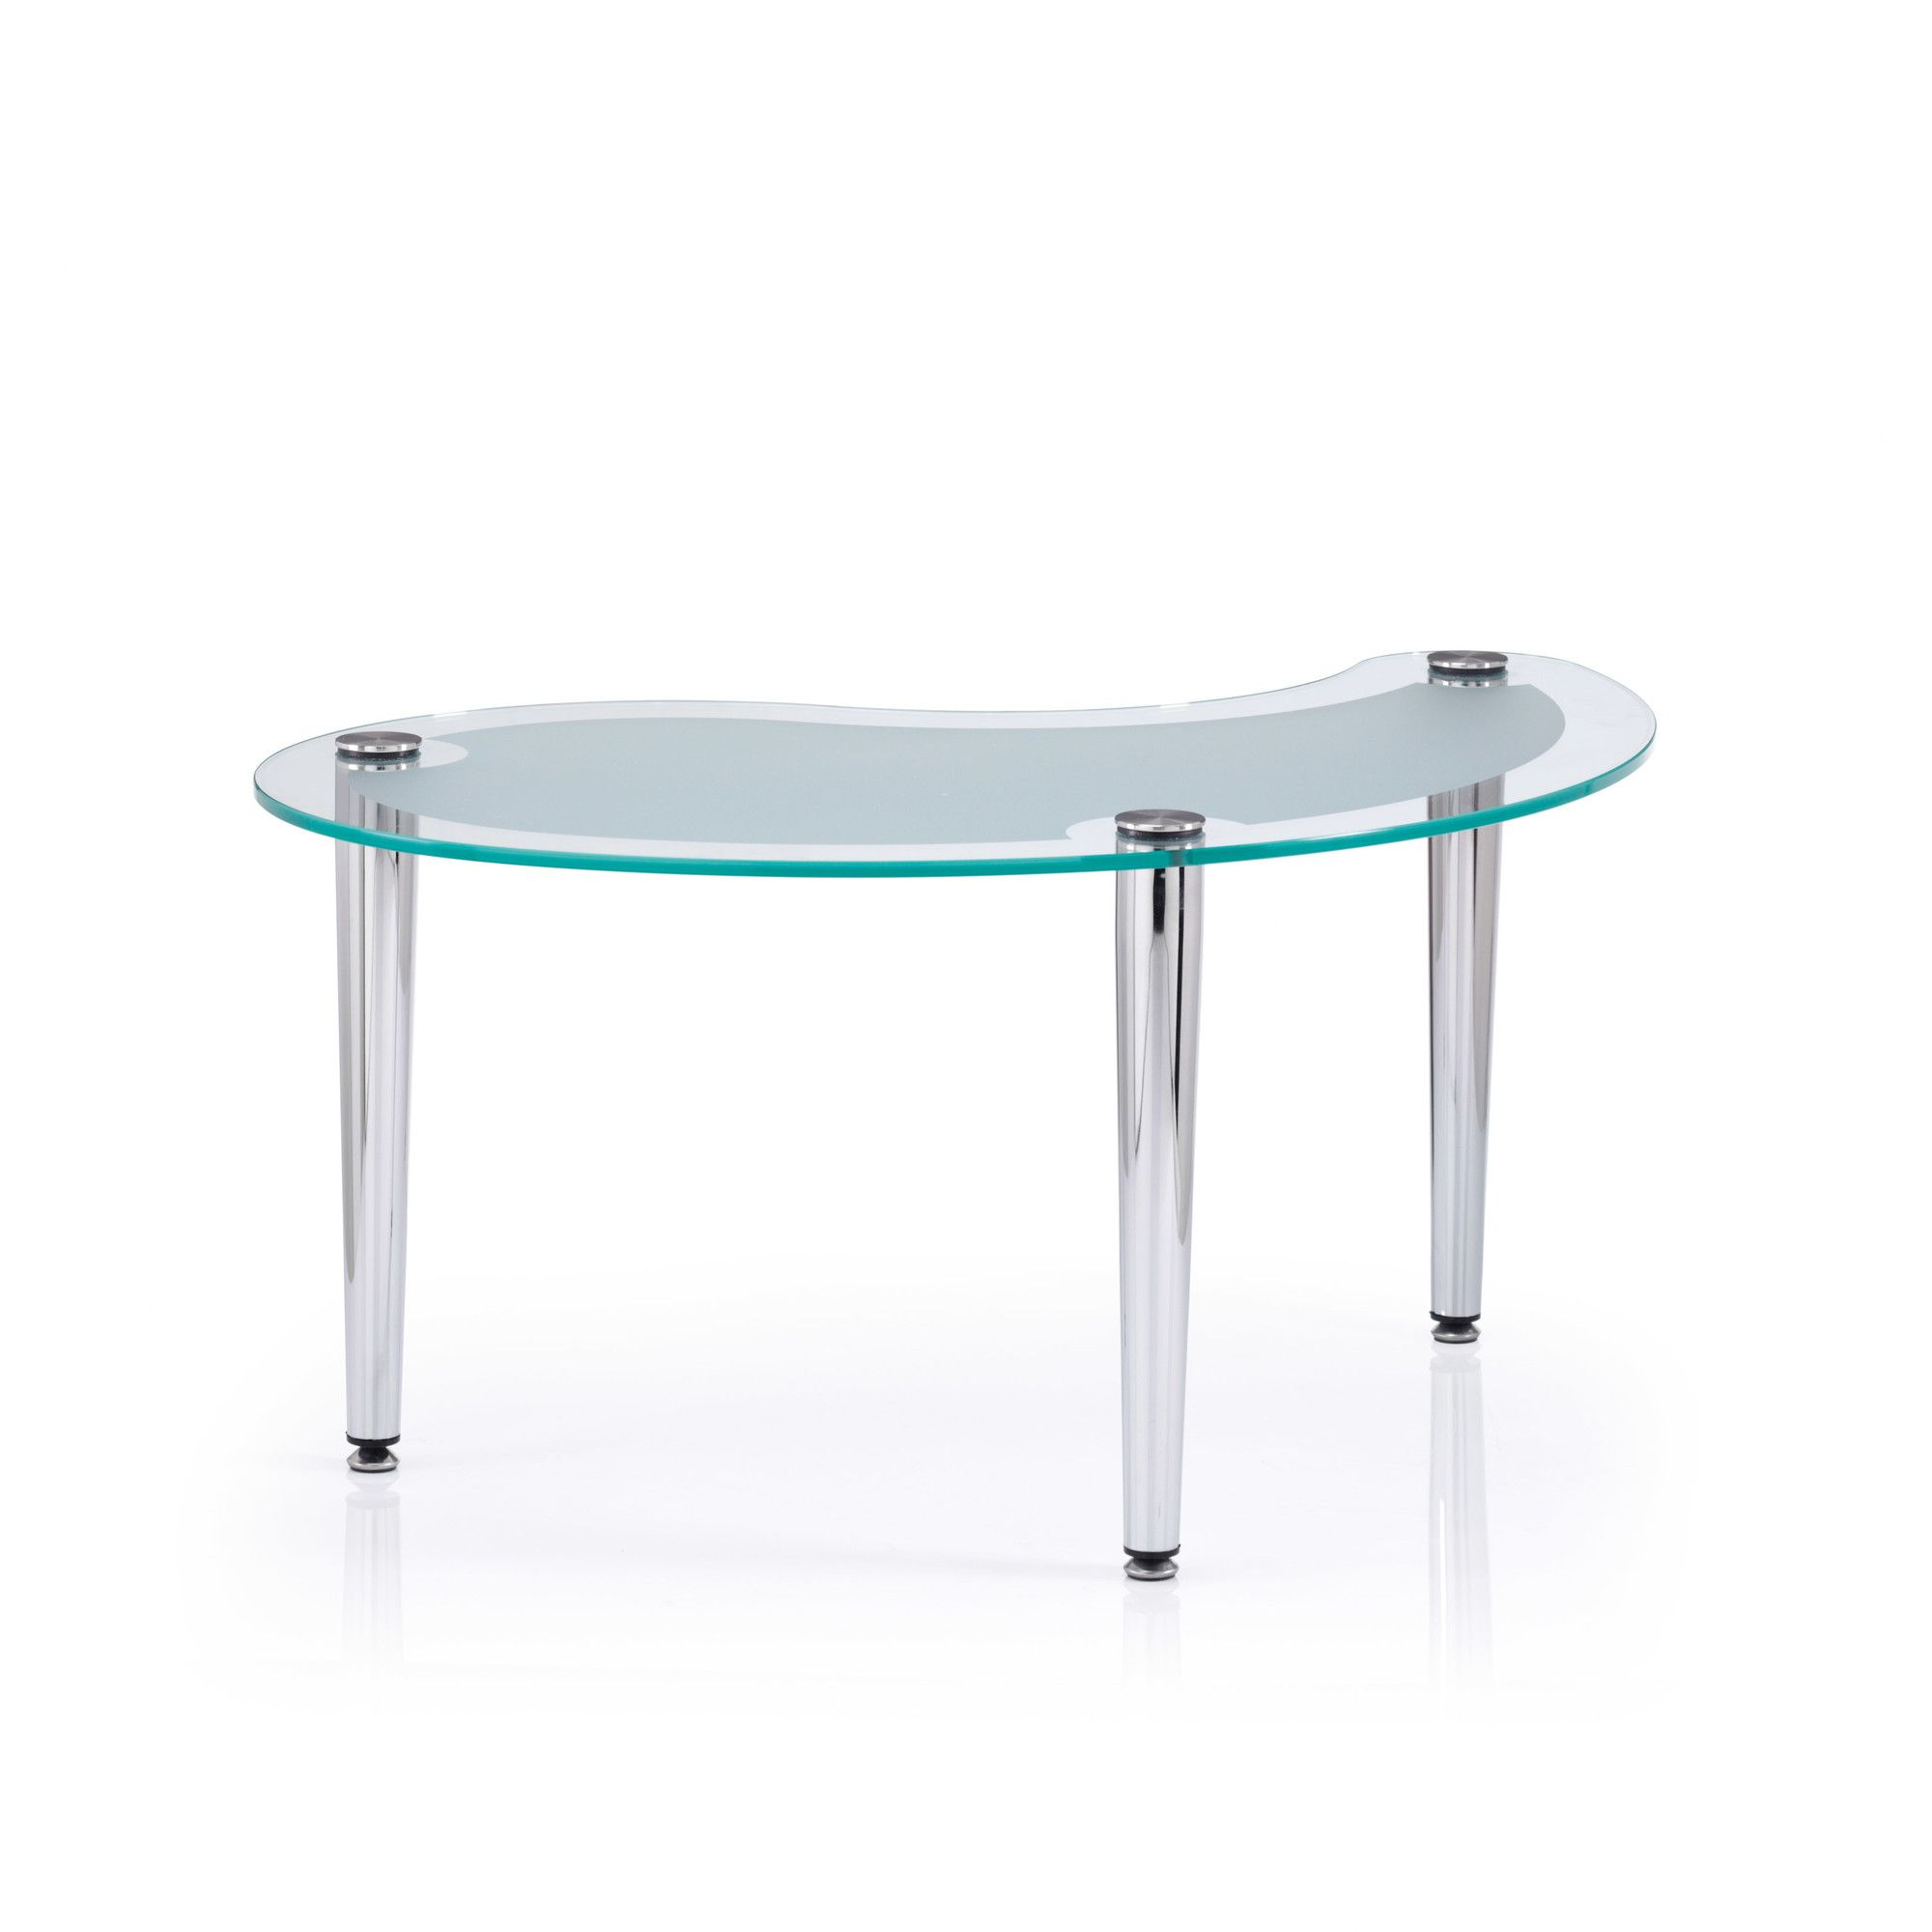 Ocee Design GT Kidney Table at Tesco Direct